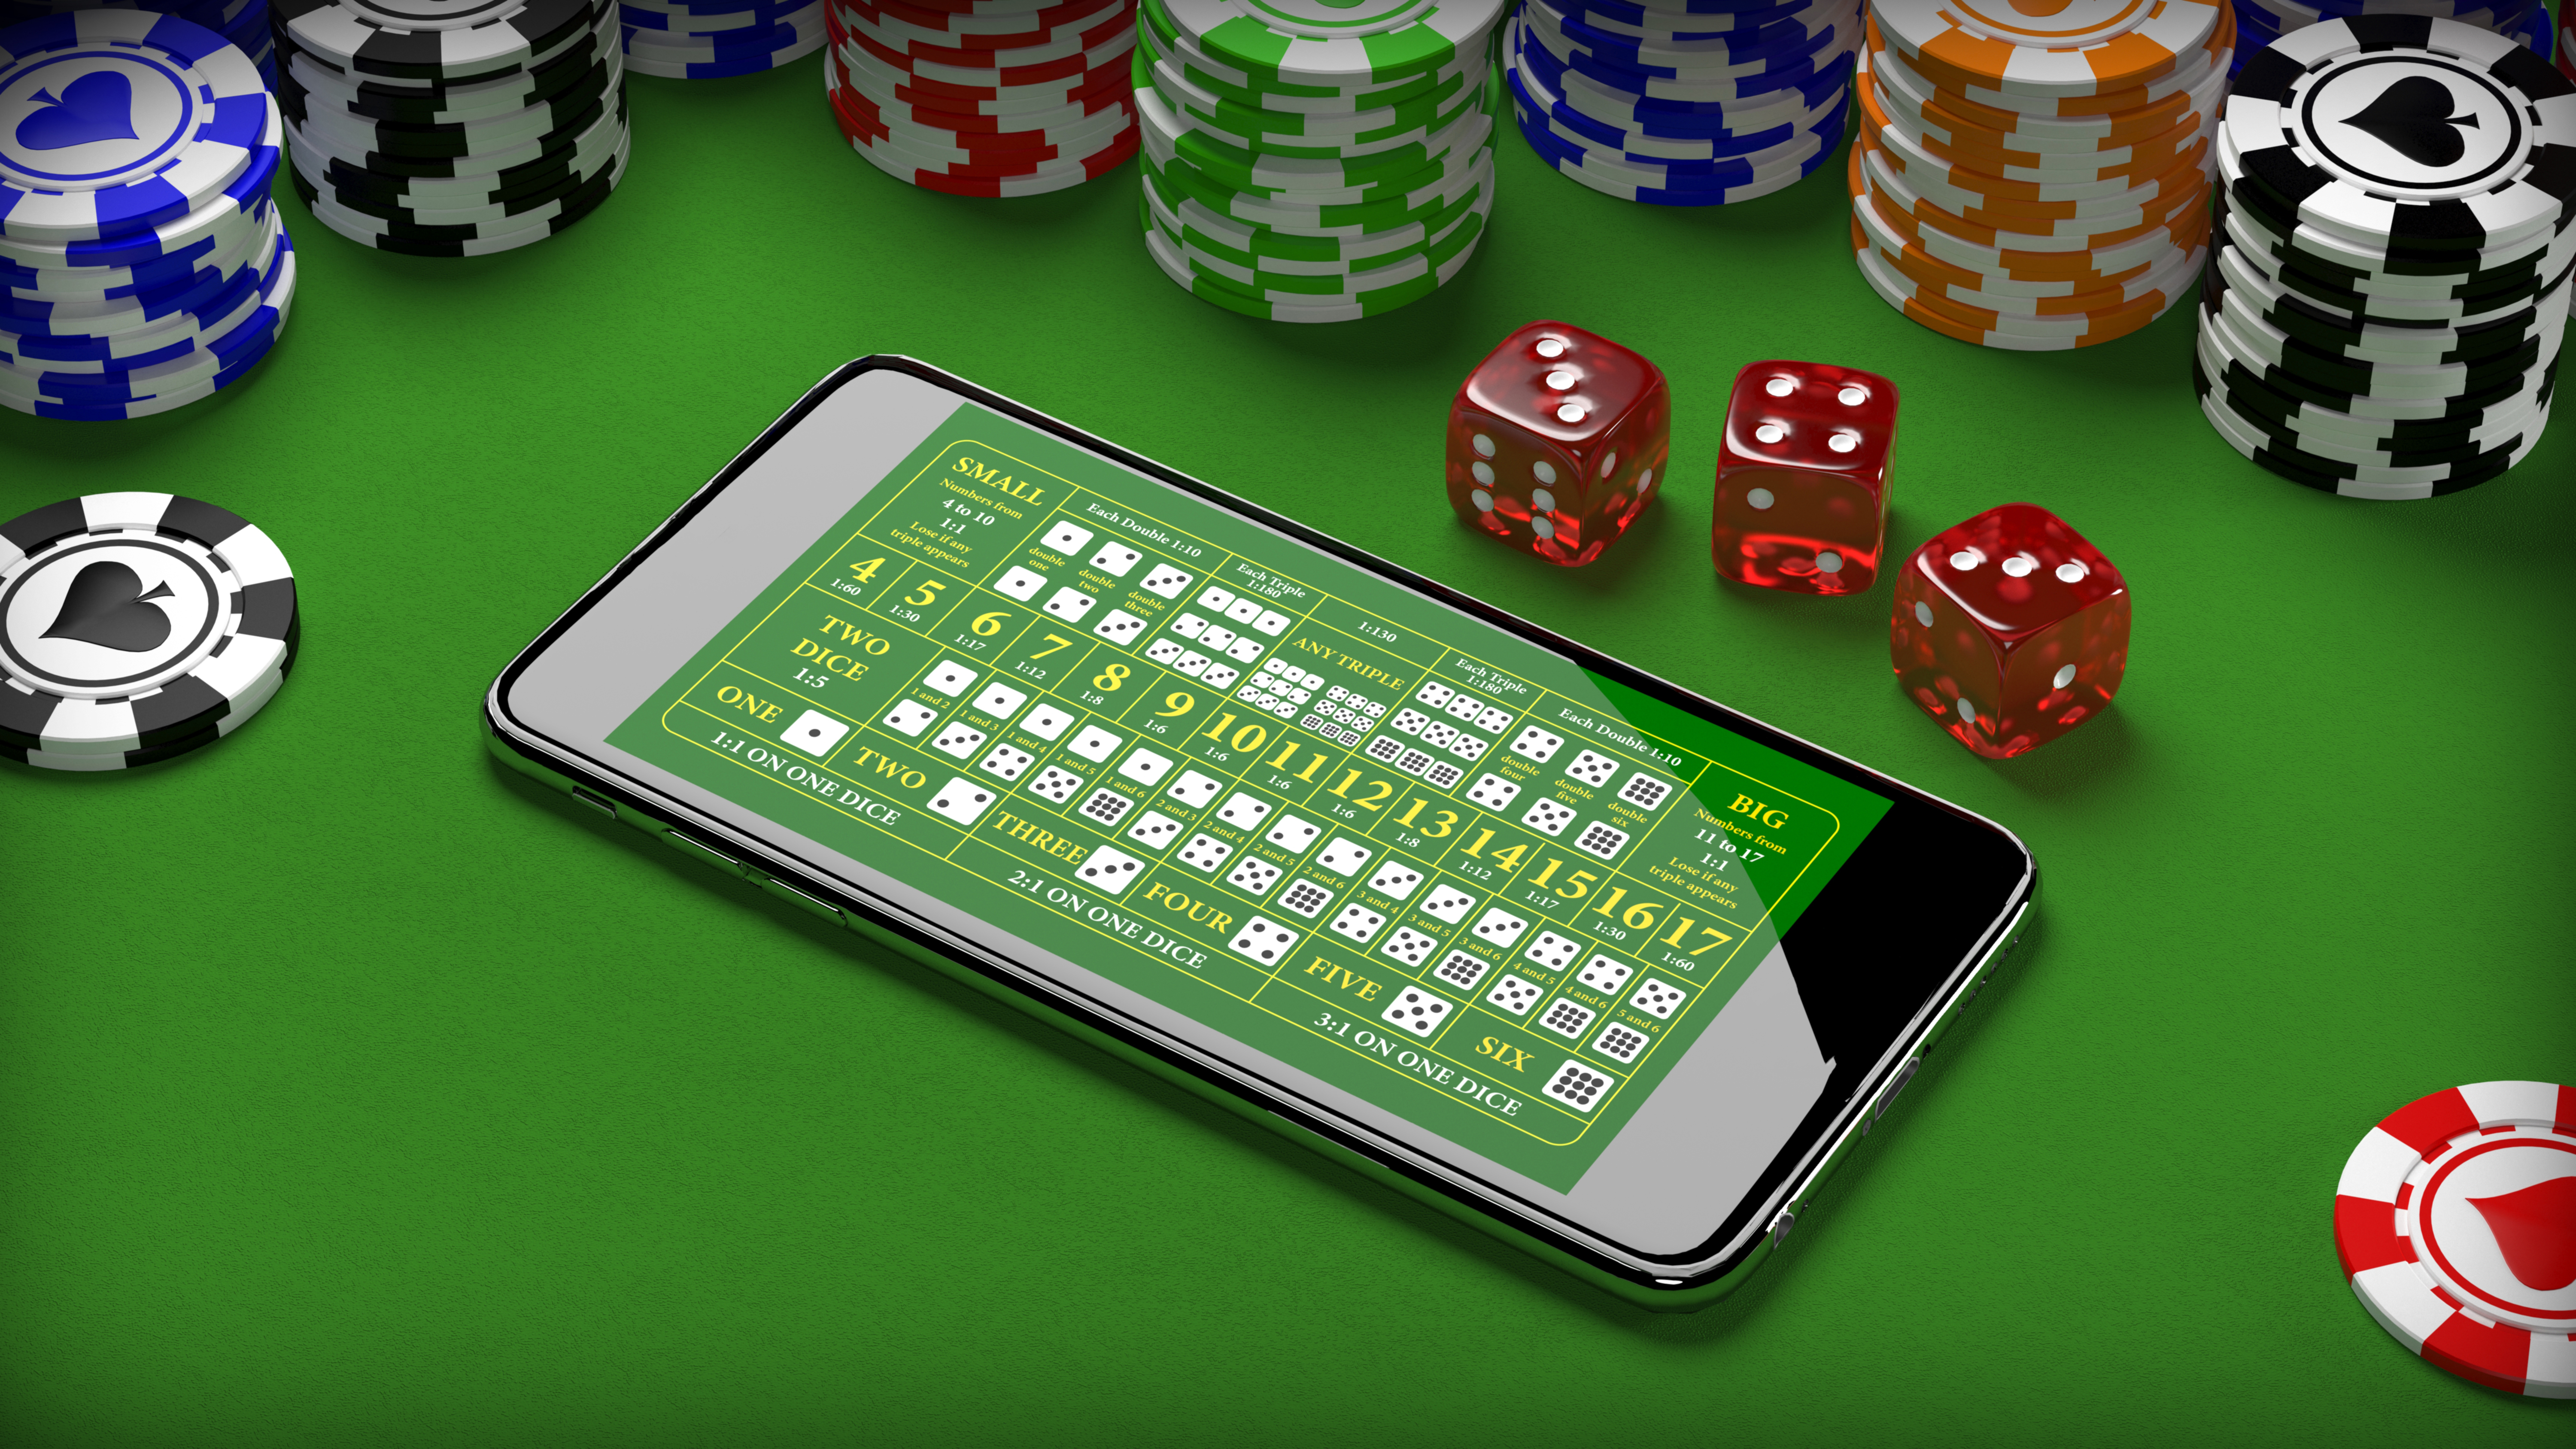 5 Ways To Have More Fun In Casino Gaming